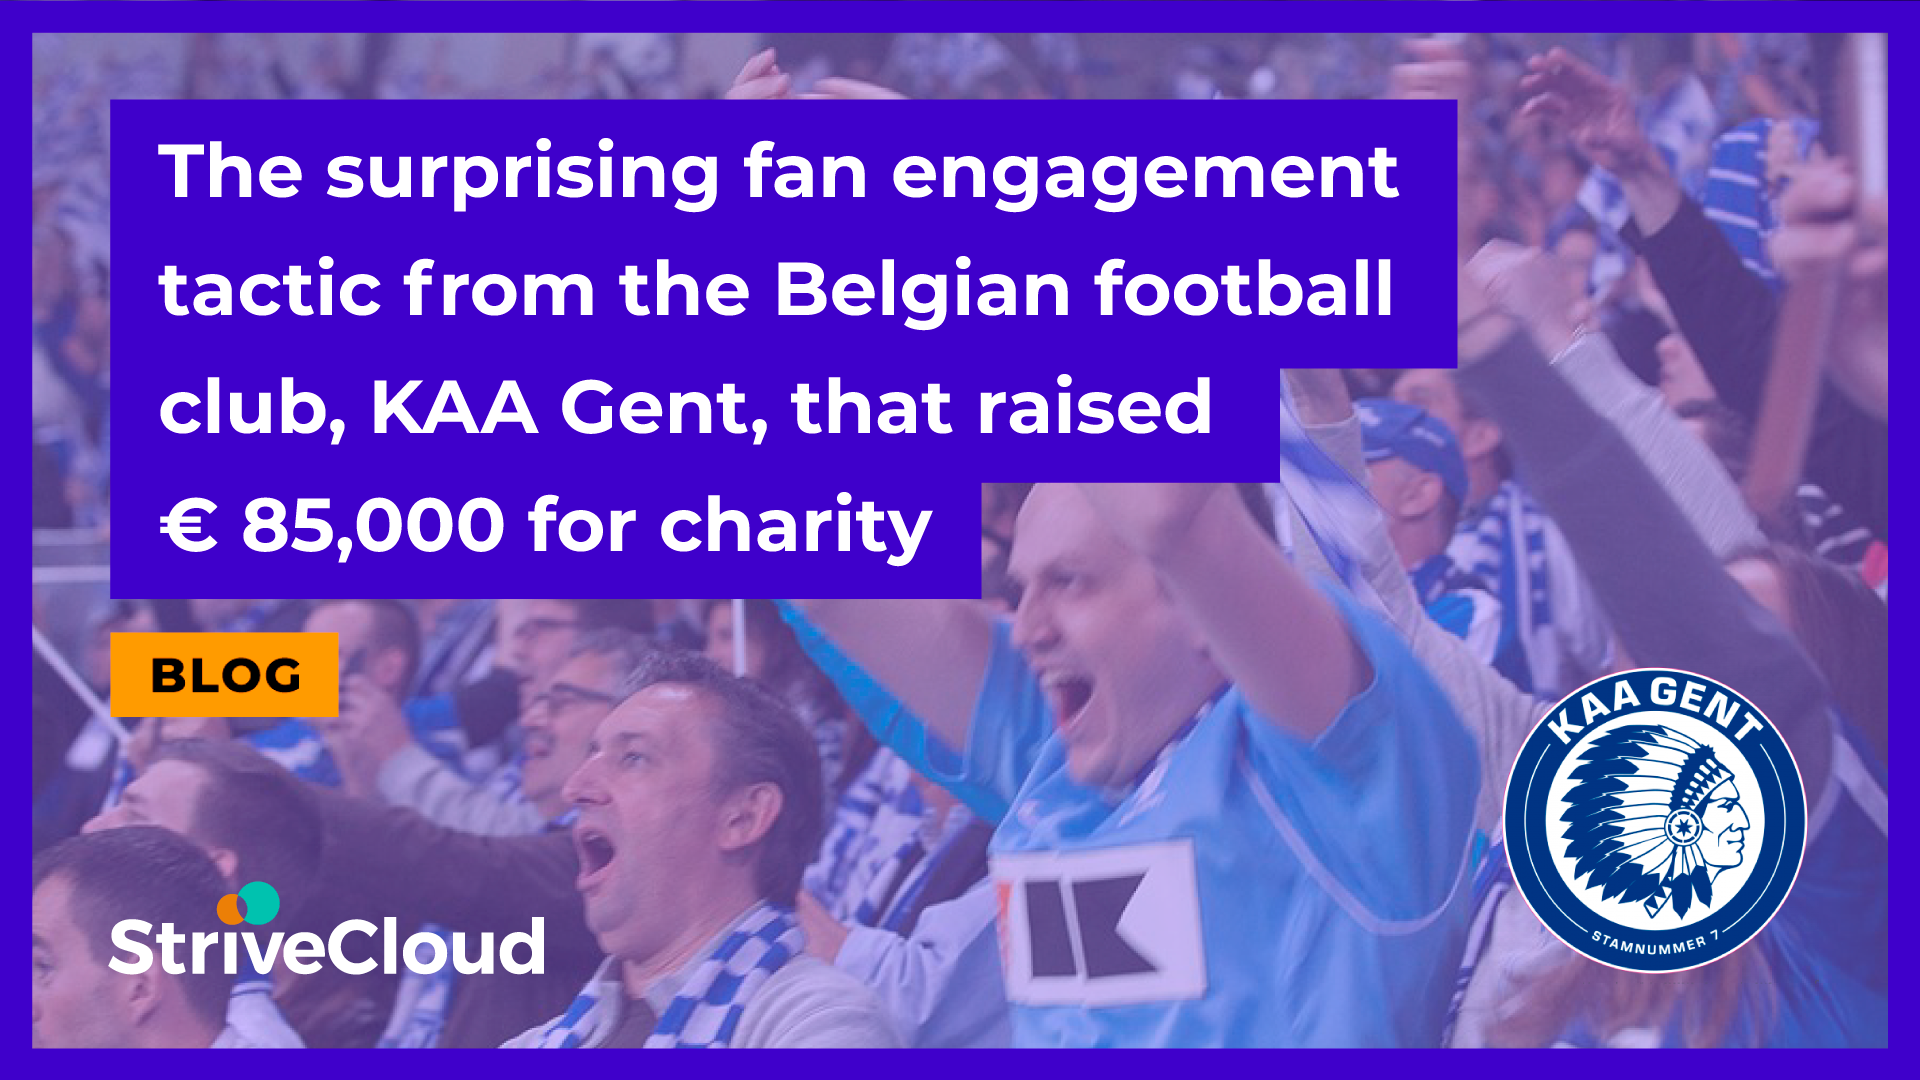 How KAA Gent raised € 85,000 for charity